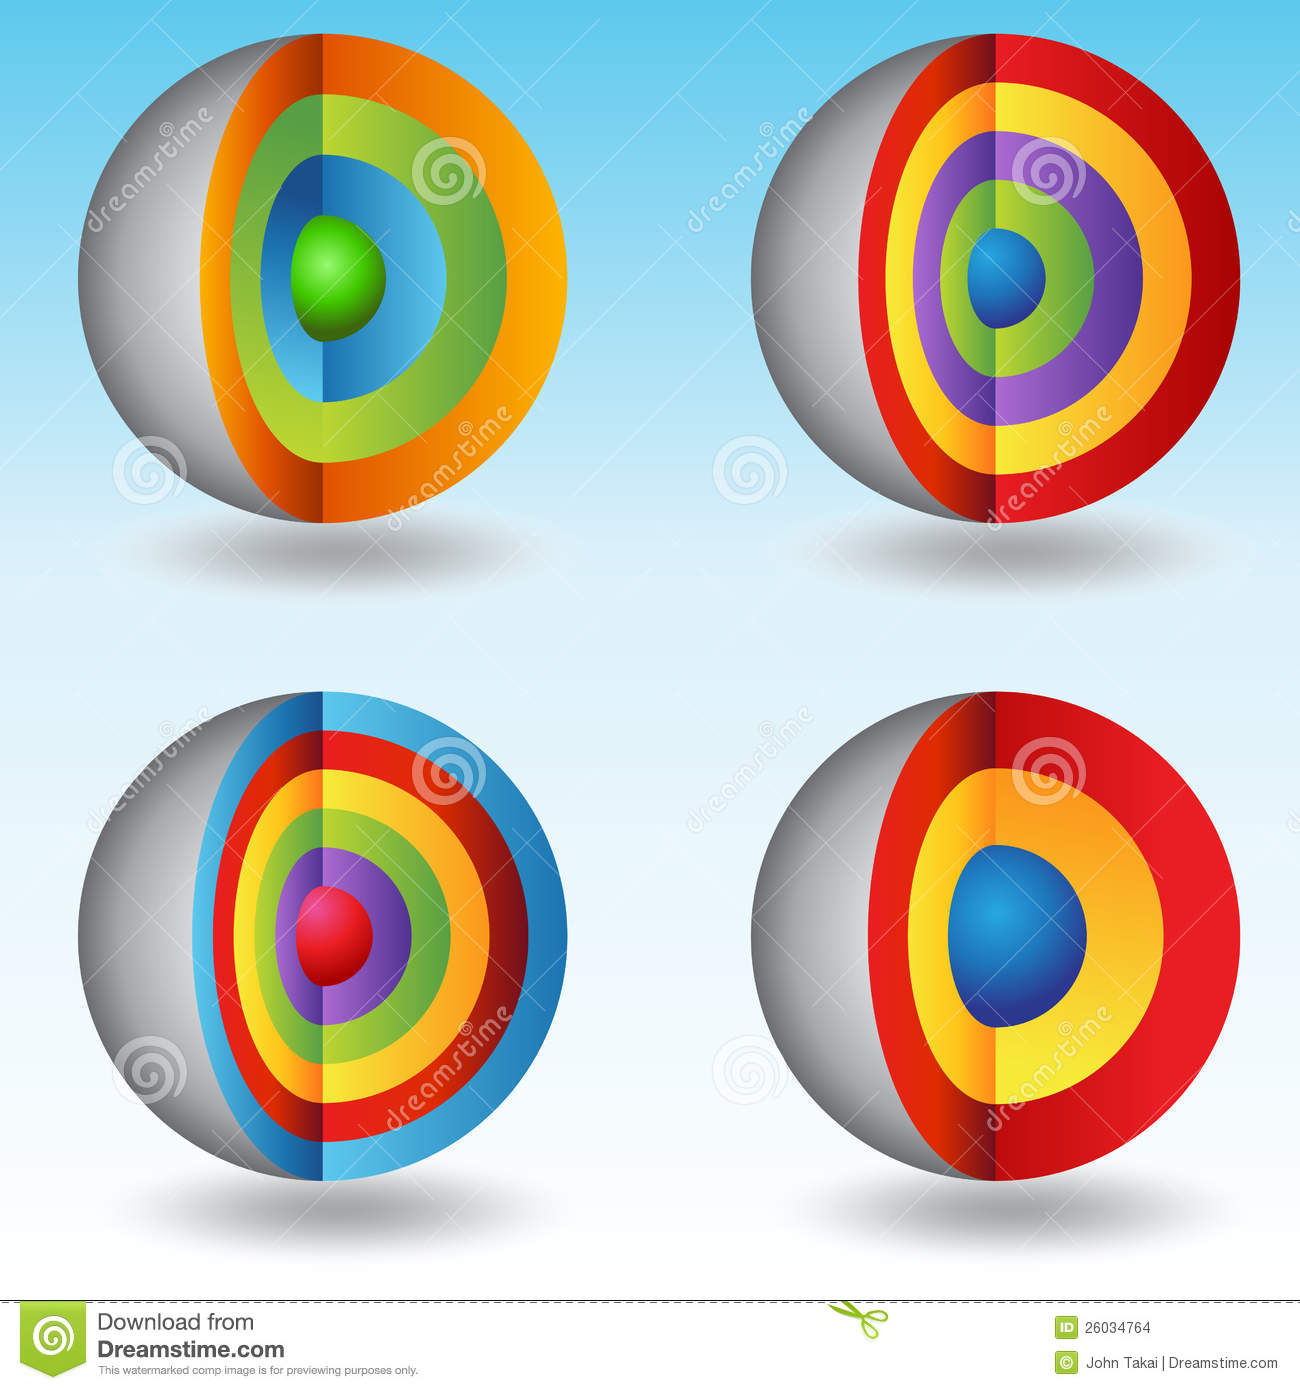 3D Layered Core Sphere Charts Stock Vector Image 26034764